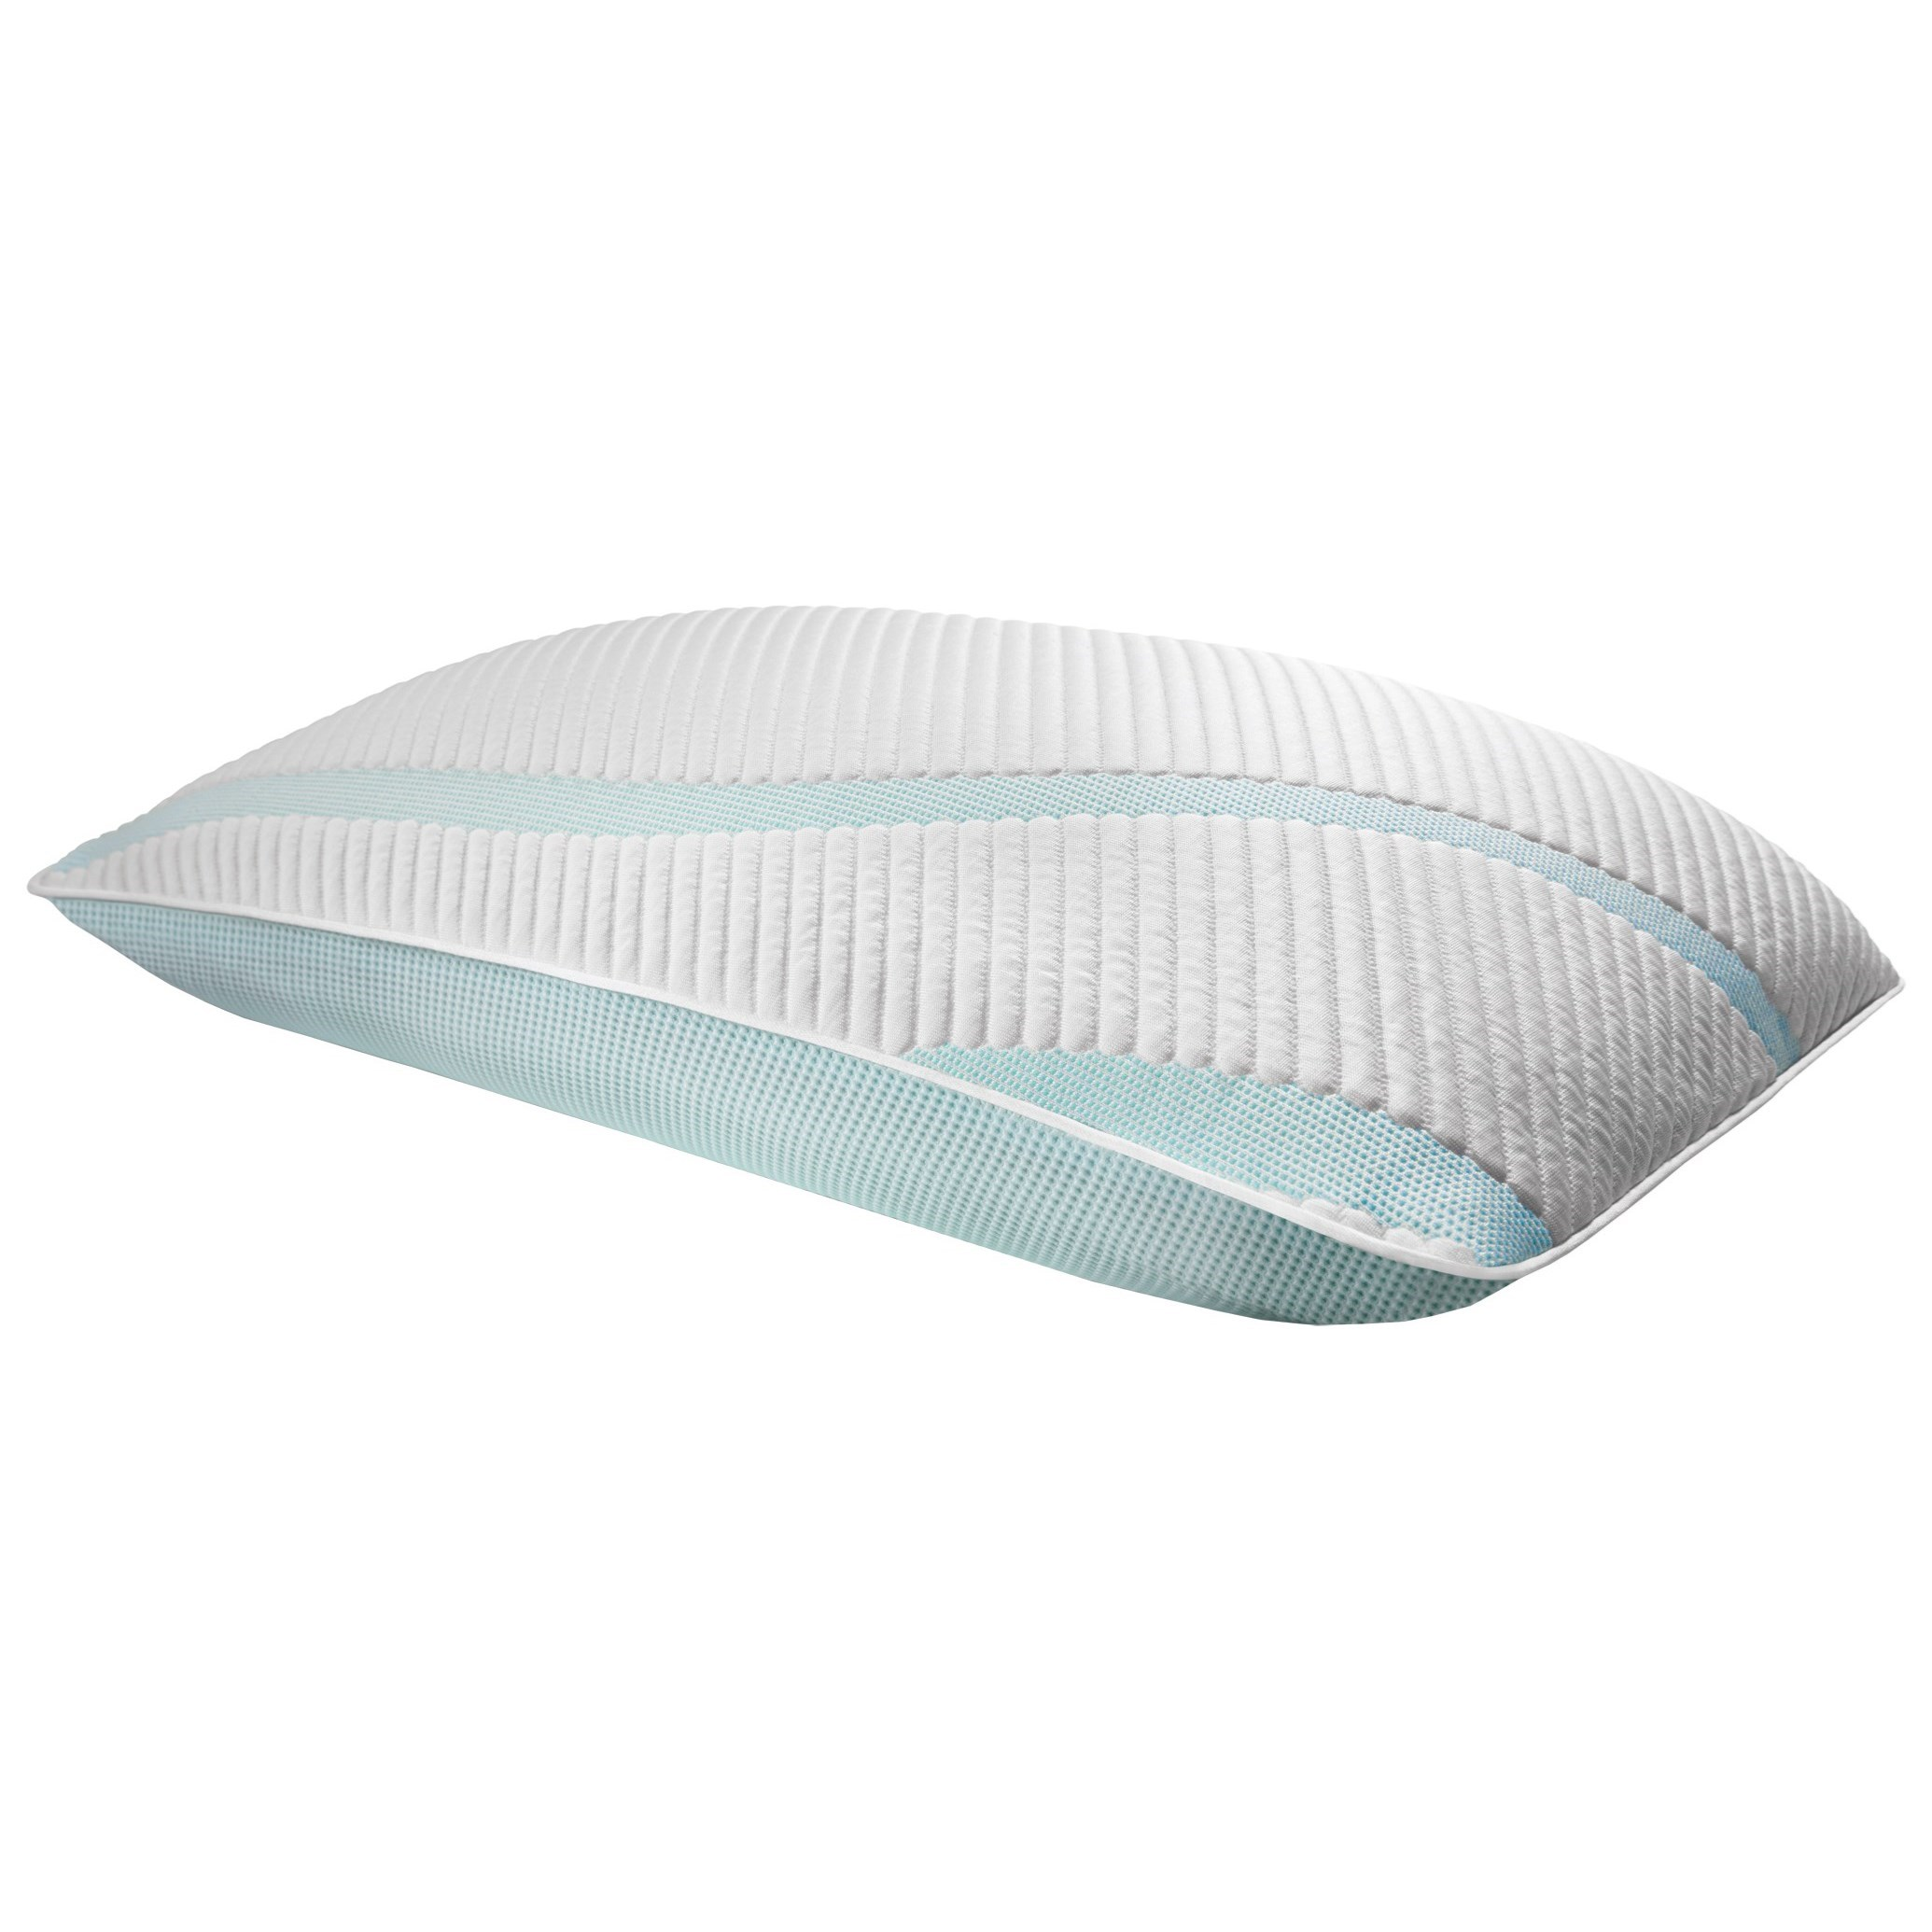 TEMPUR-Adapt Pro-Mid Tempur-Pedic Tempur-Adapt King Pillow by Tempur-Pedic® at HomeWorld Furniture